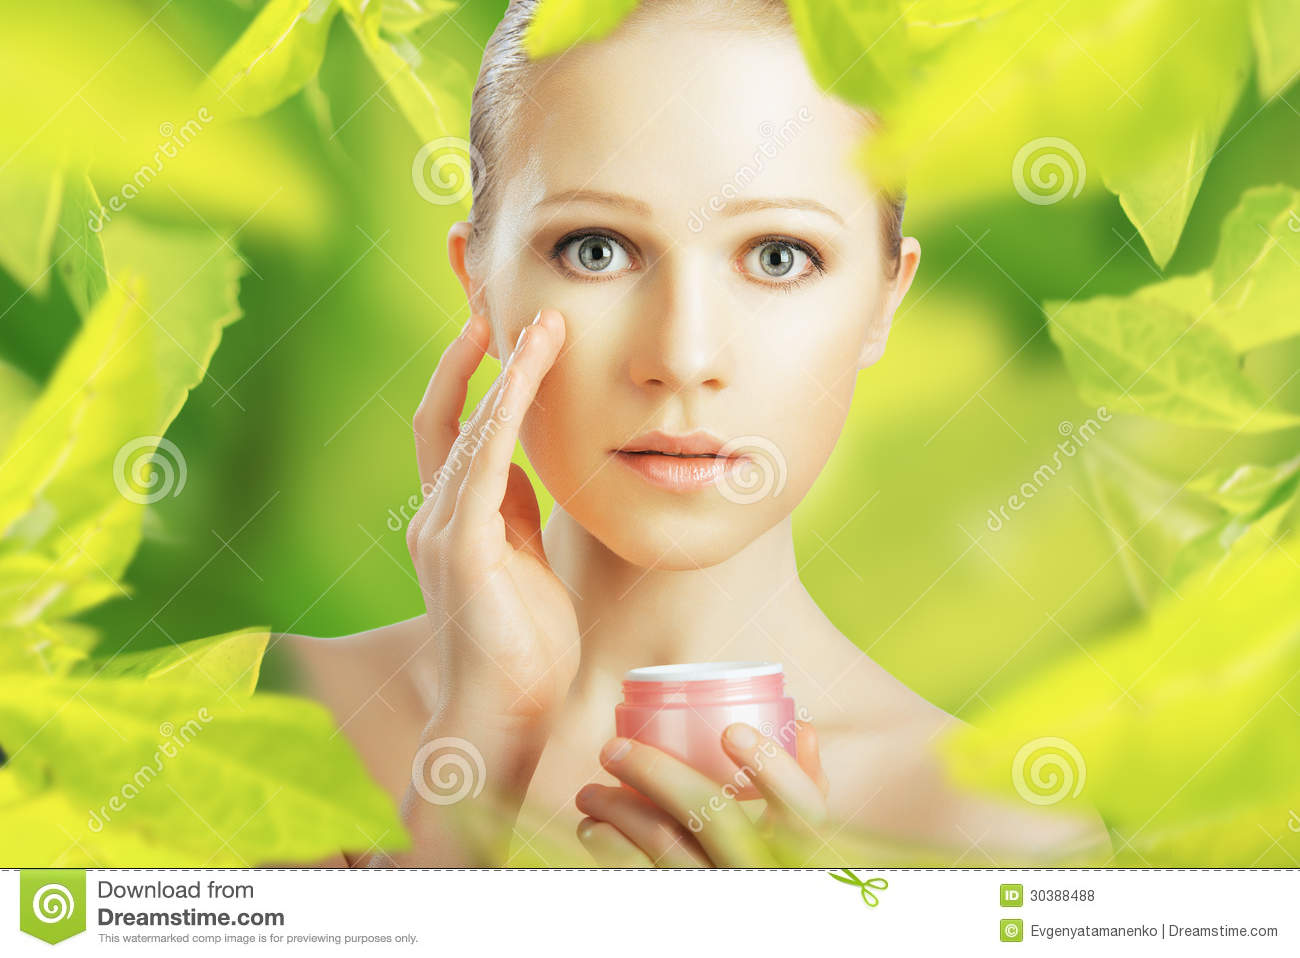 Beauty young woman with cream and a natural skin care in herbal green